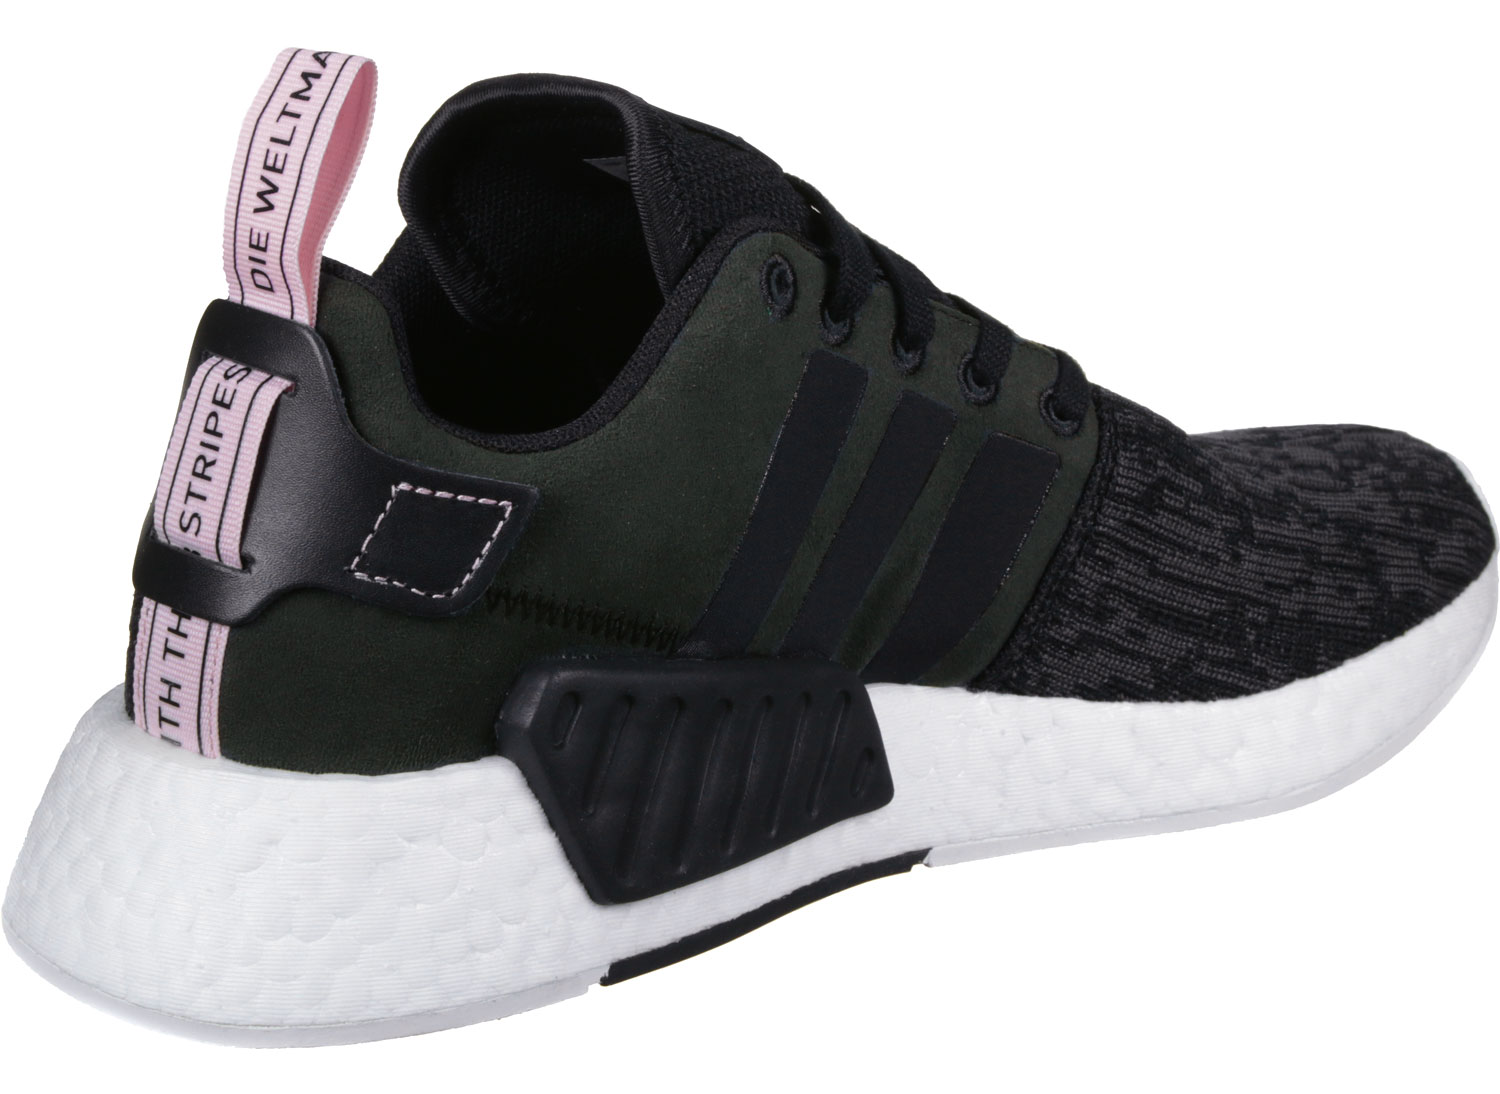 Refrain Prescribe pull  adidas NMD R2 W - Sneakers Low at Stylefile